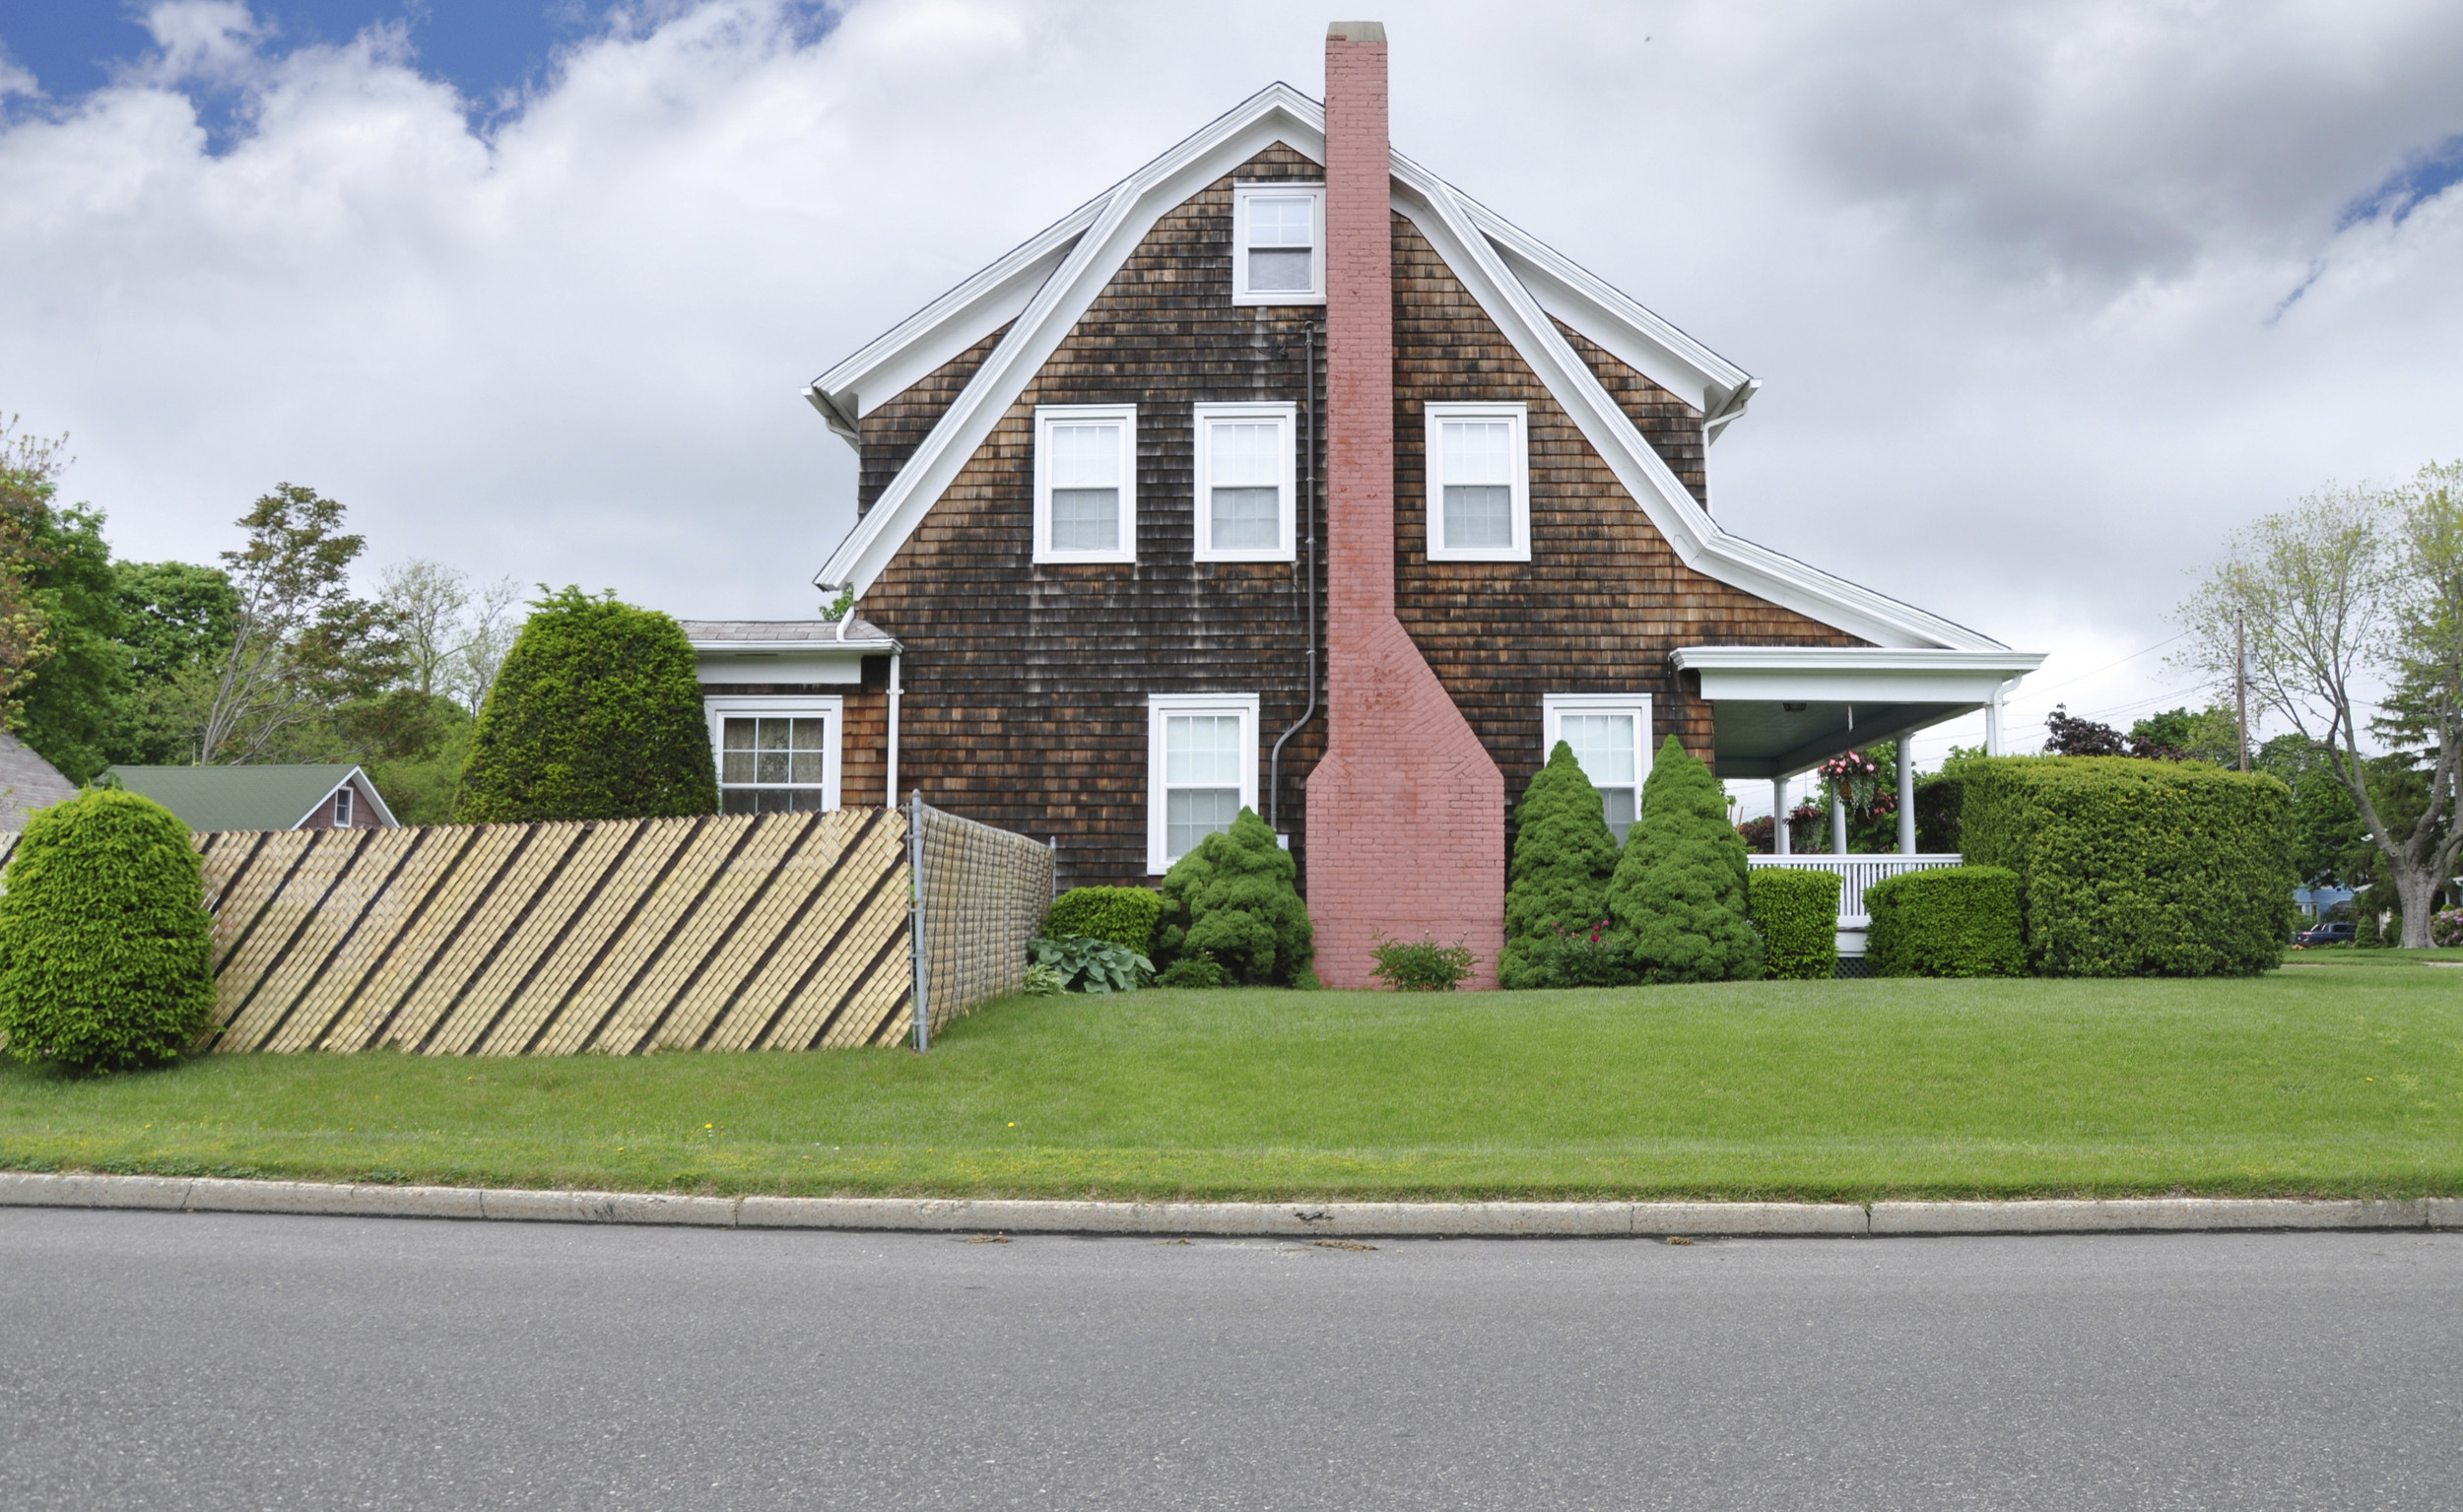 Boosting curb appeal: Top 5 tips to aid power of your home's first impression